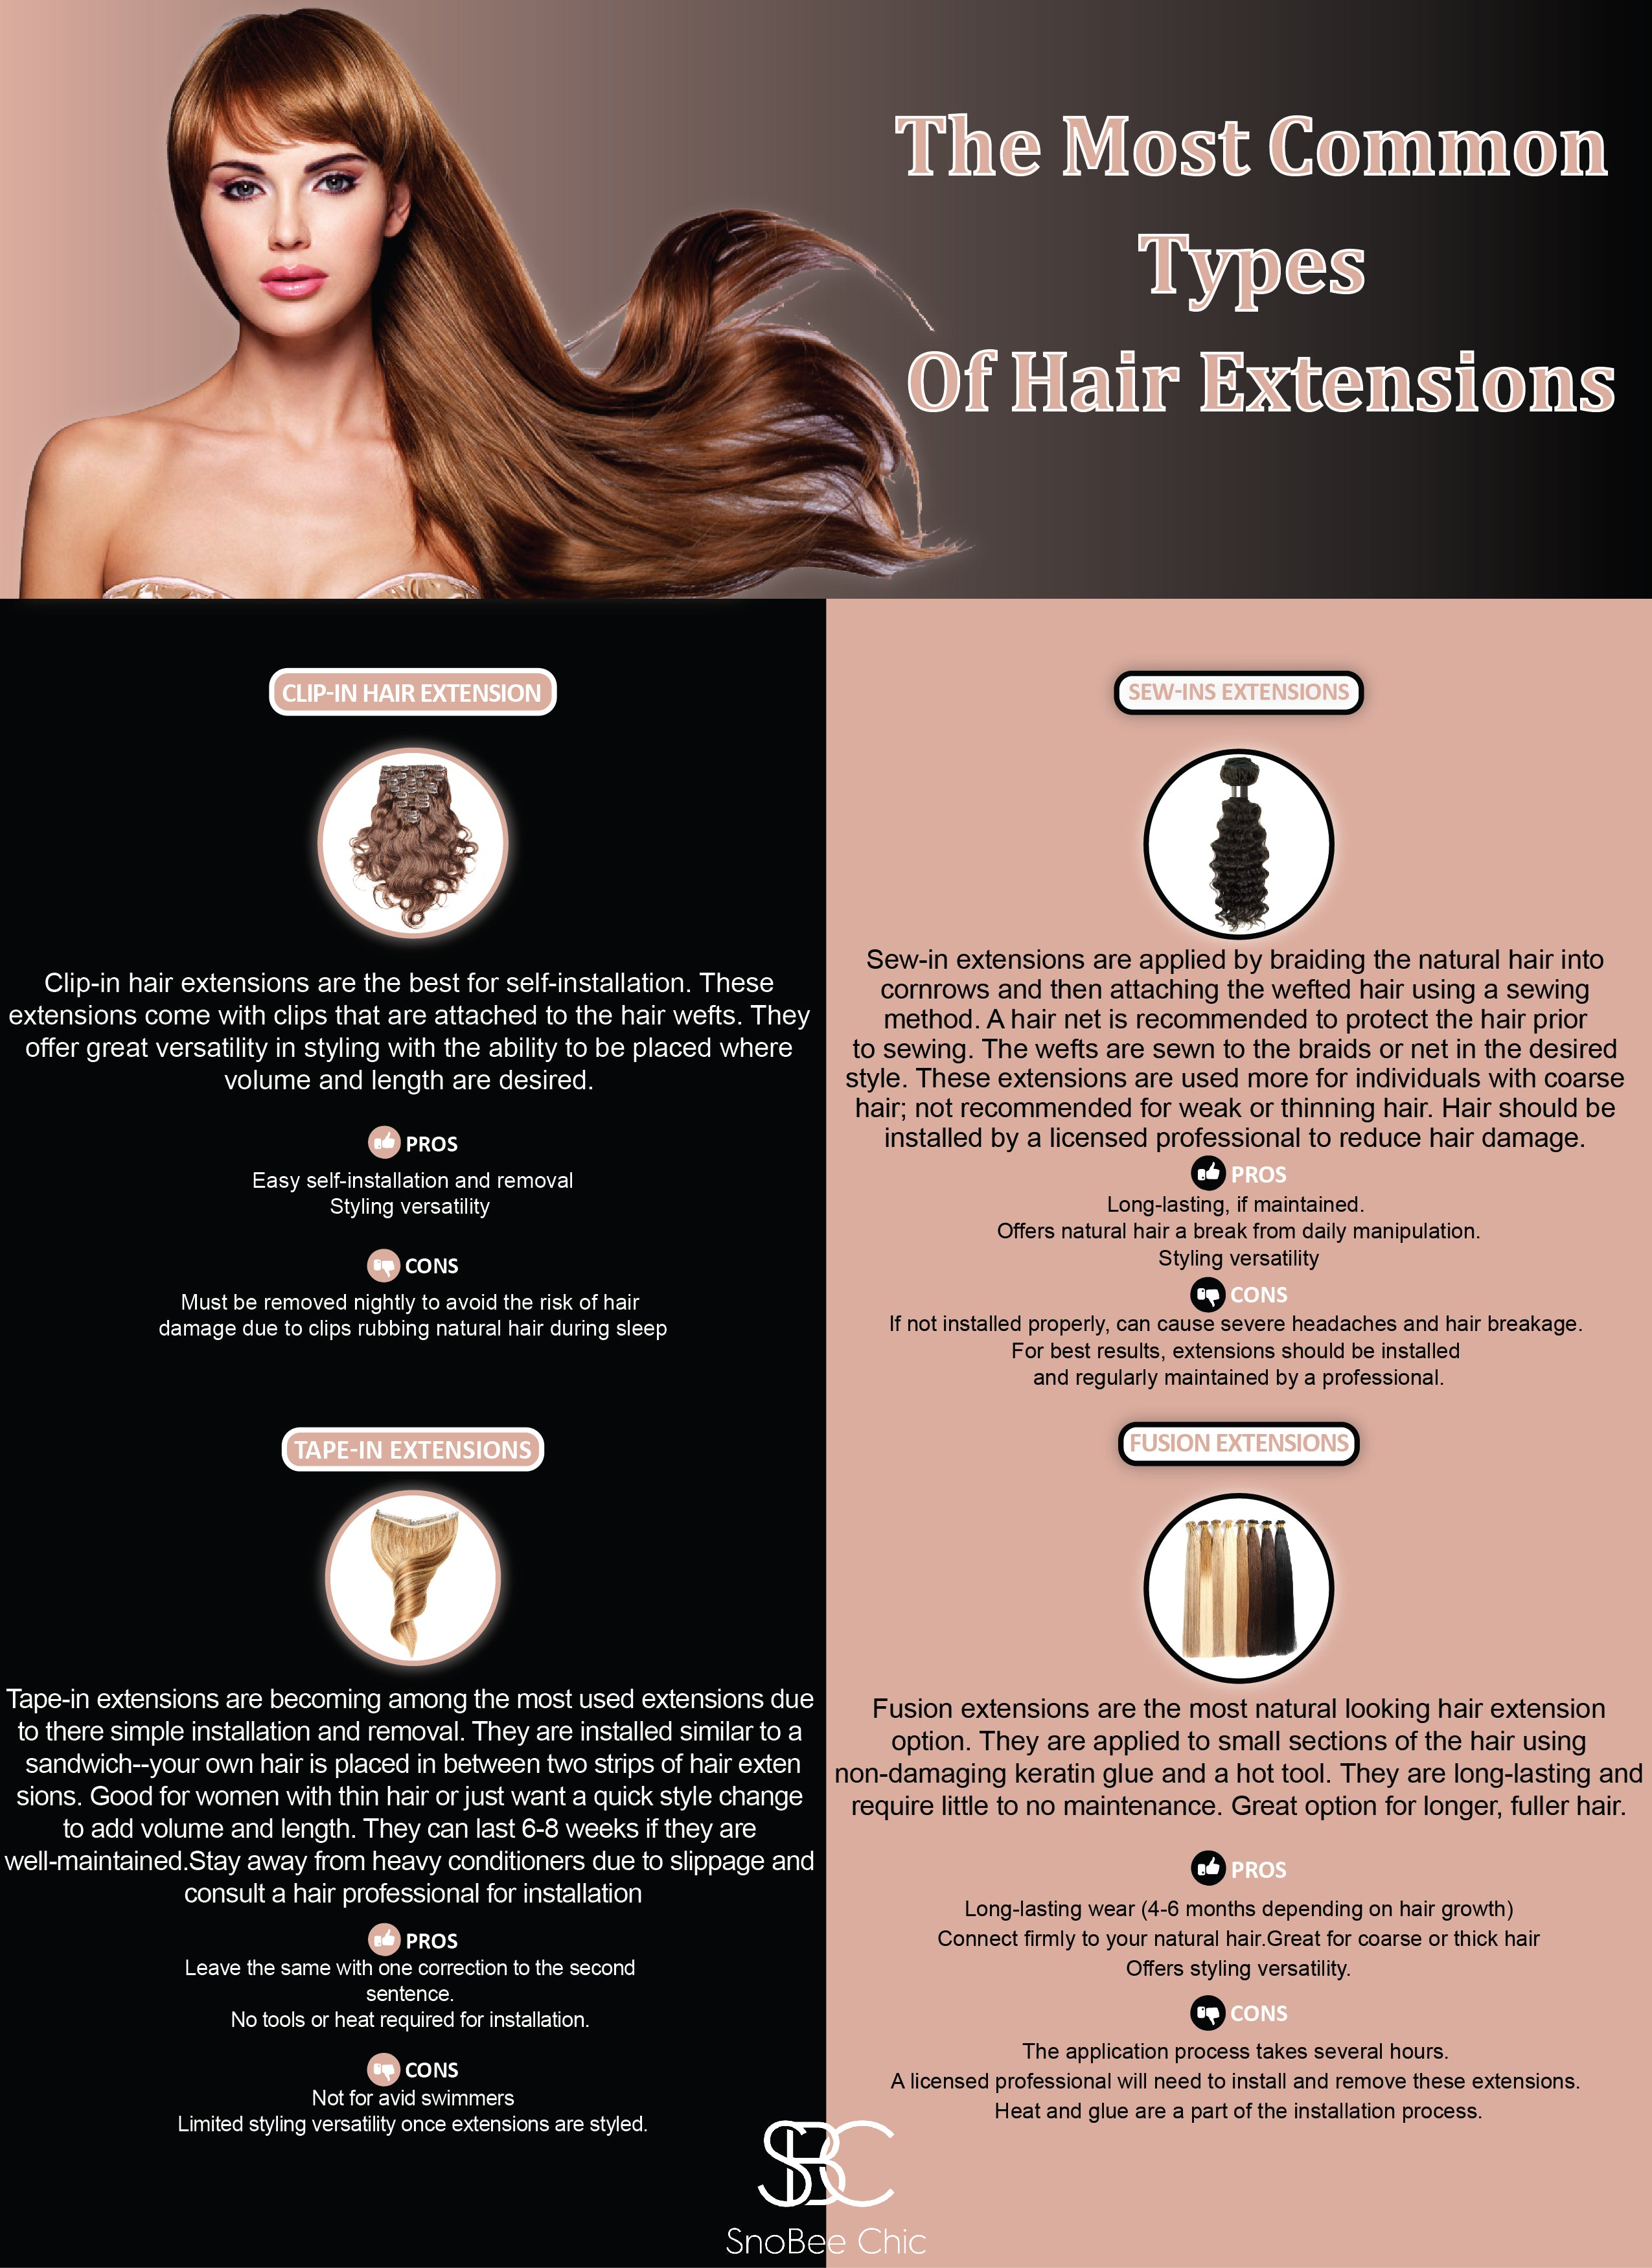 The Most Common Types Of Hair Extensions